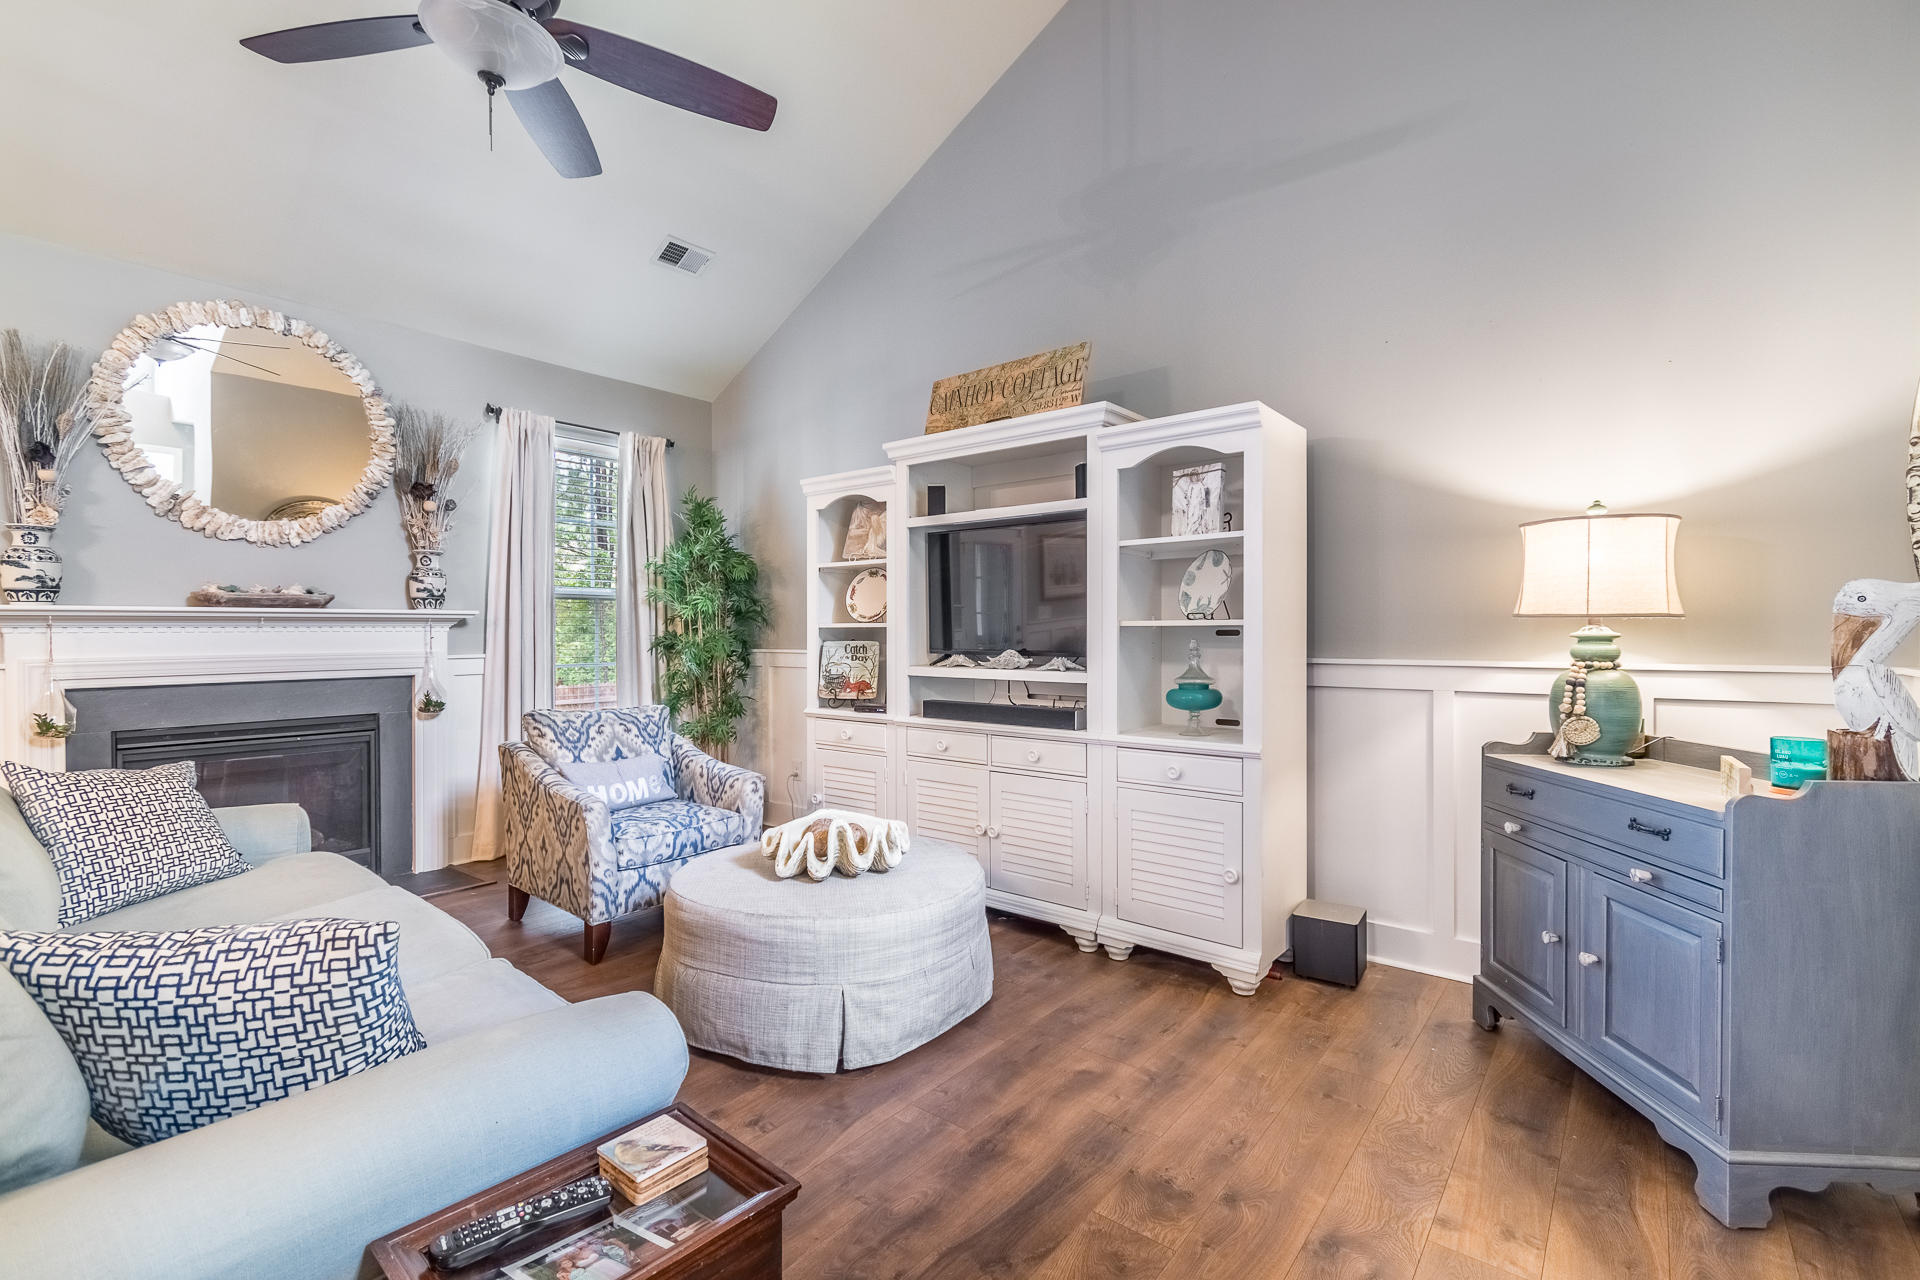 Cainhoy Landing Homes For Sale - 203 Ferry Point, Charleston, SC - 22